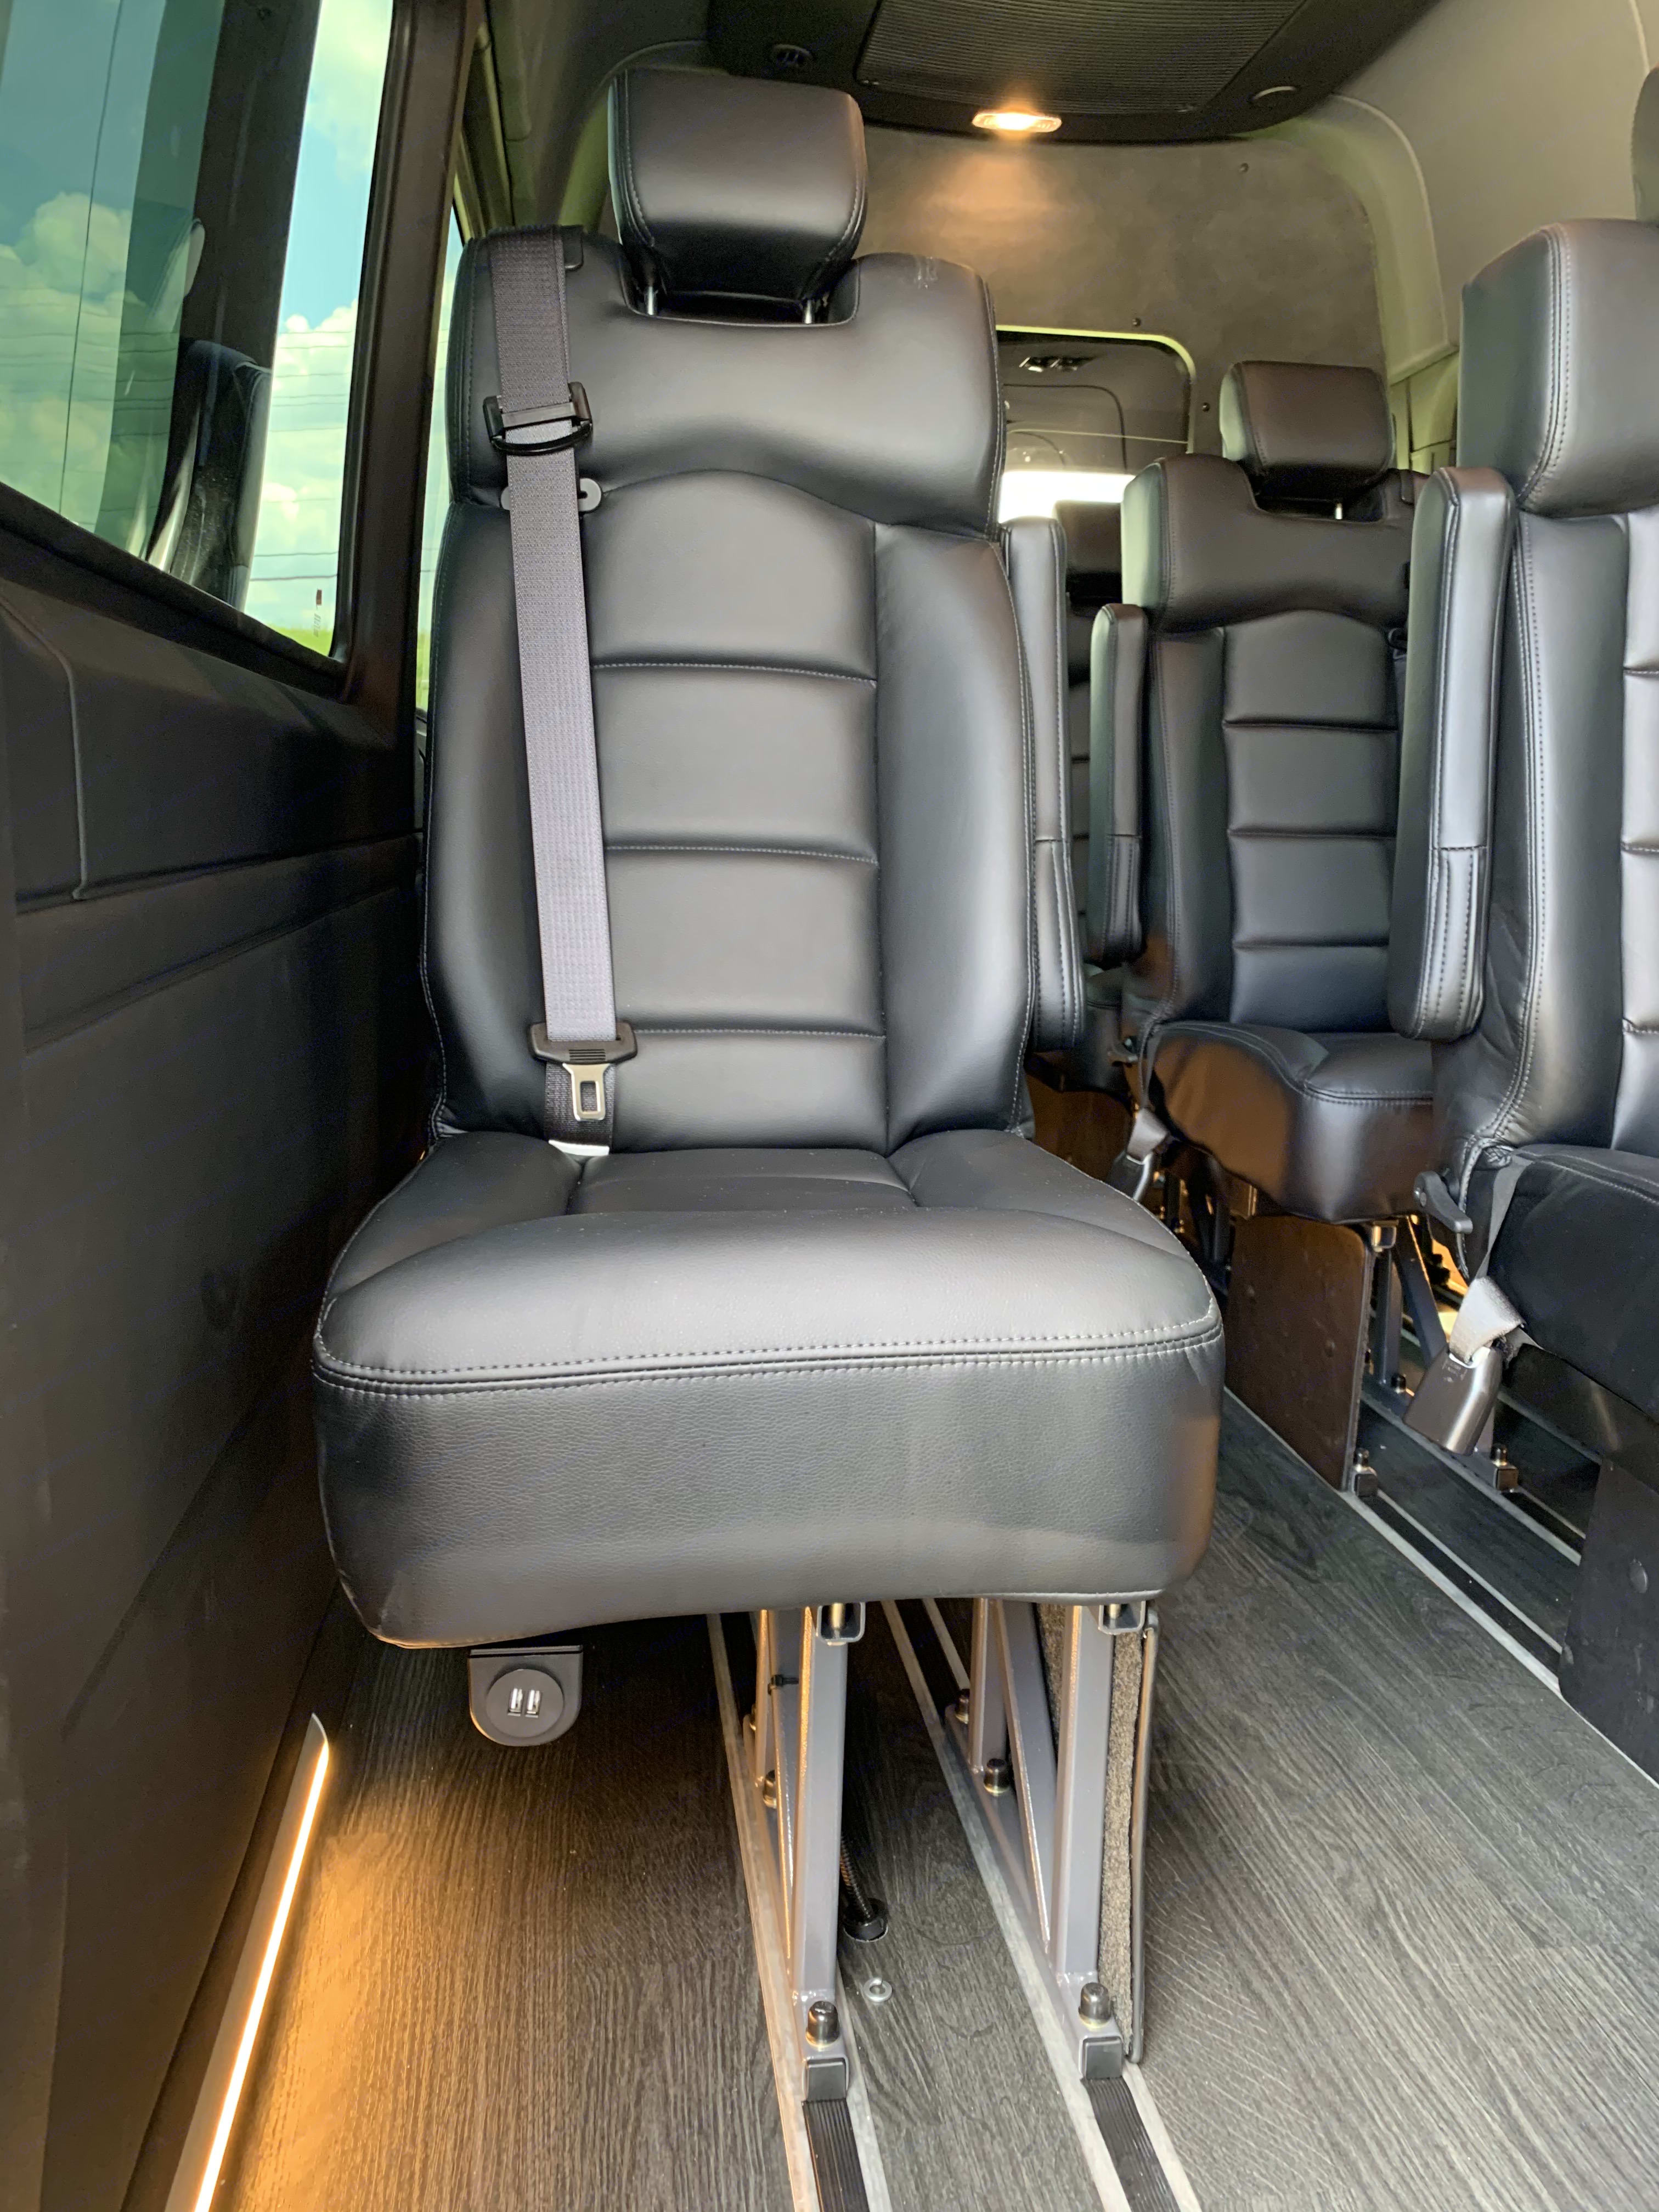 USB charger for EVERYONE!. Mercedes-Benz Sprinter 2019